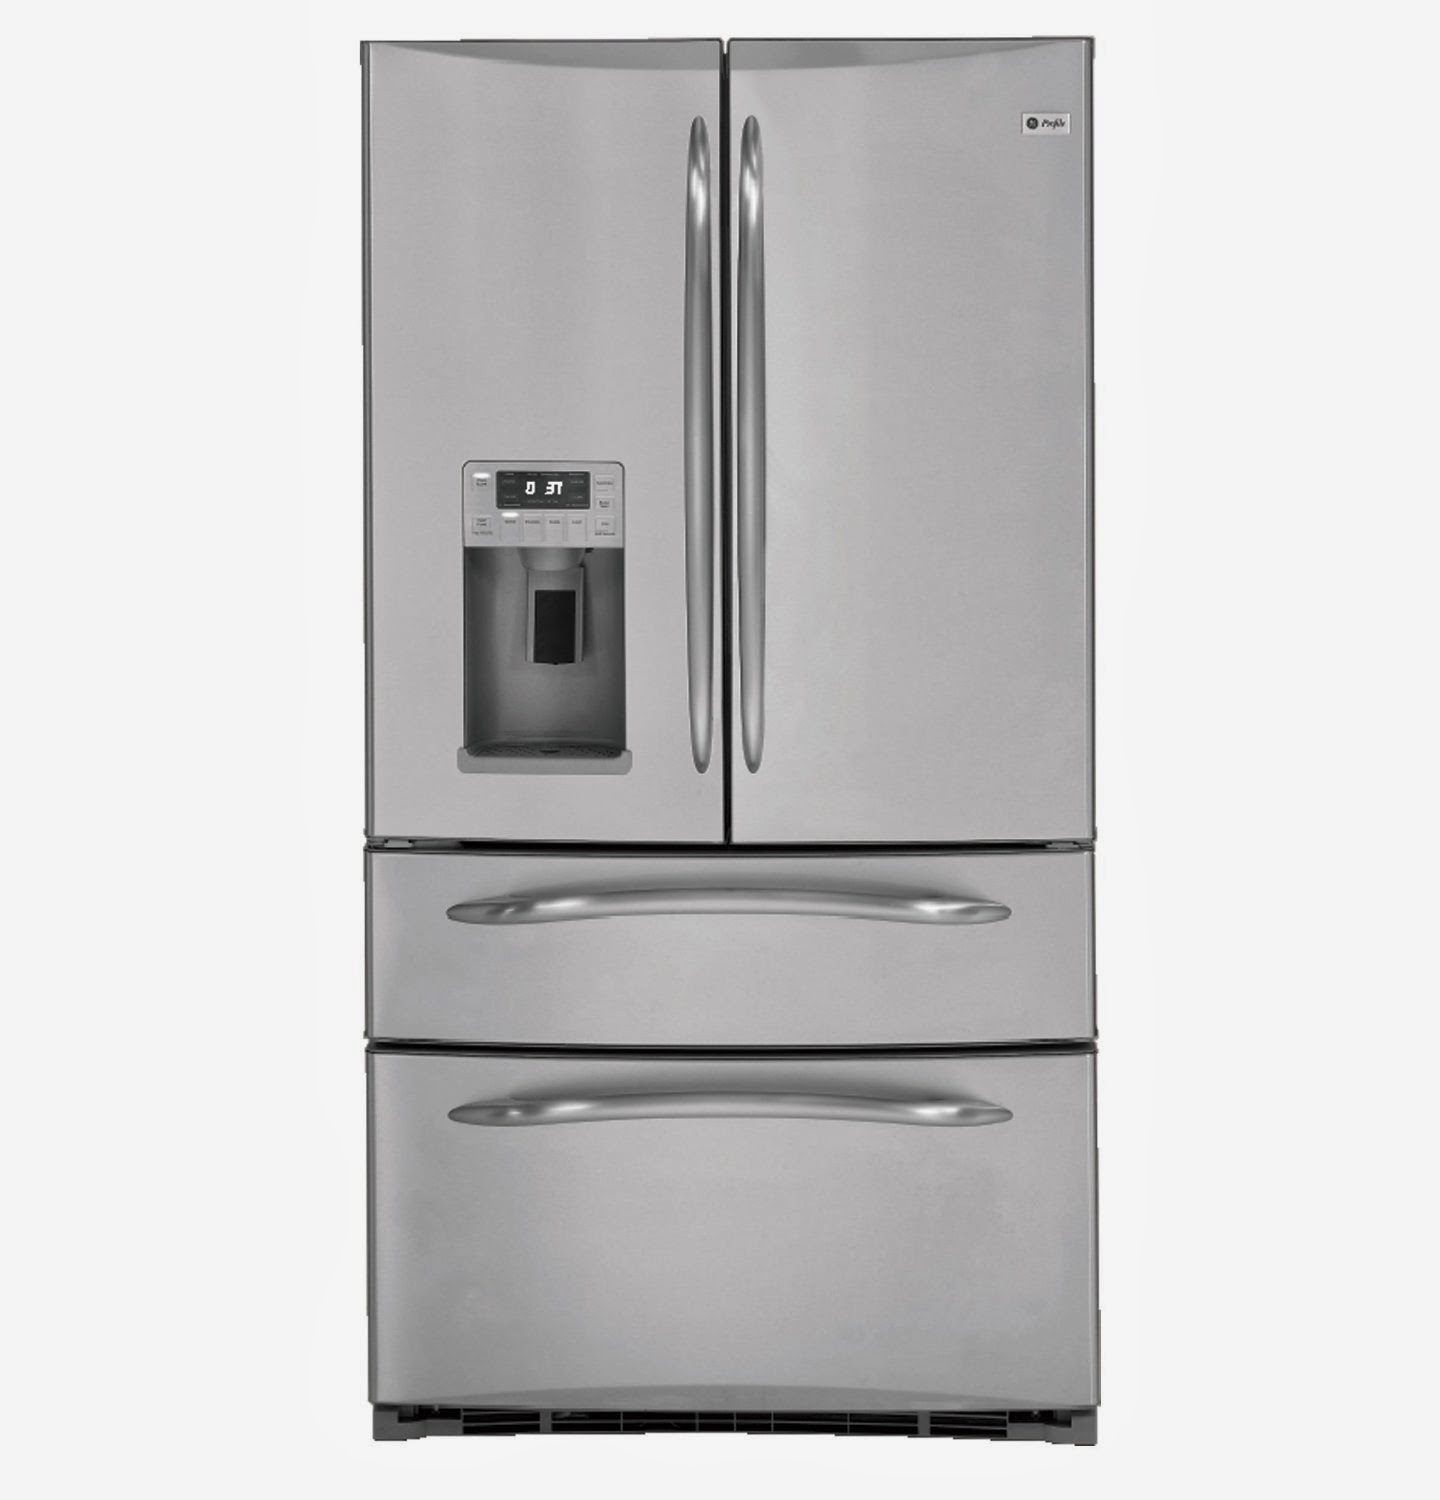 counter depth refrigerators reviews: February 2014